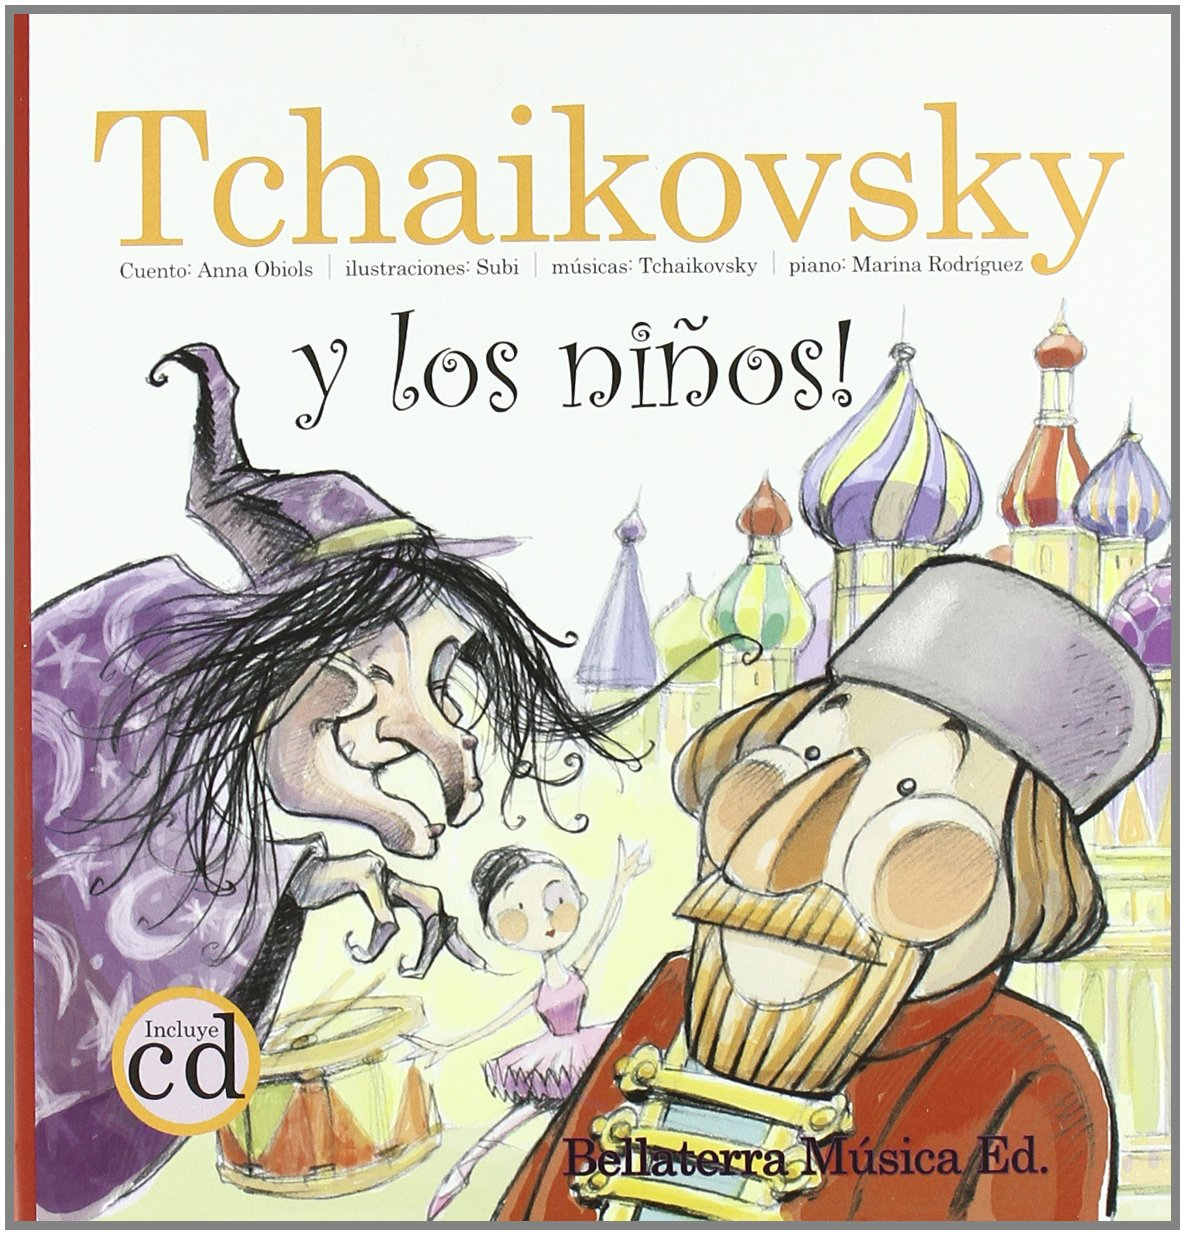 Tchaikovsky en el pequeno mundo de los juguetes/ Tchaikovsky and the Small World of Toys (Los Grandes Compositores Y Los Ninos/ The Great Composers and the Kids)